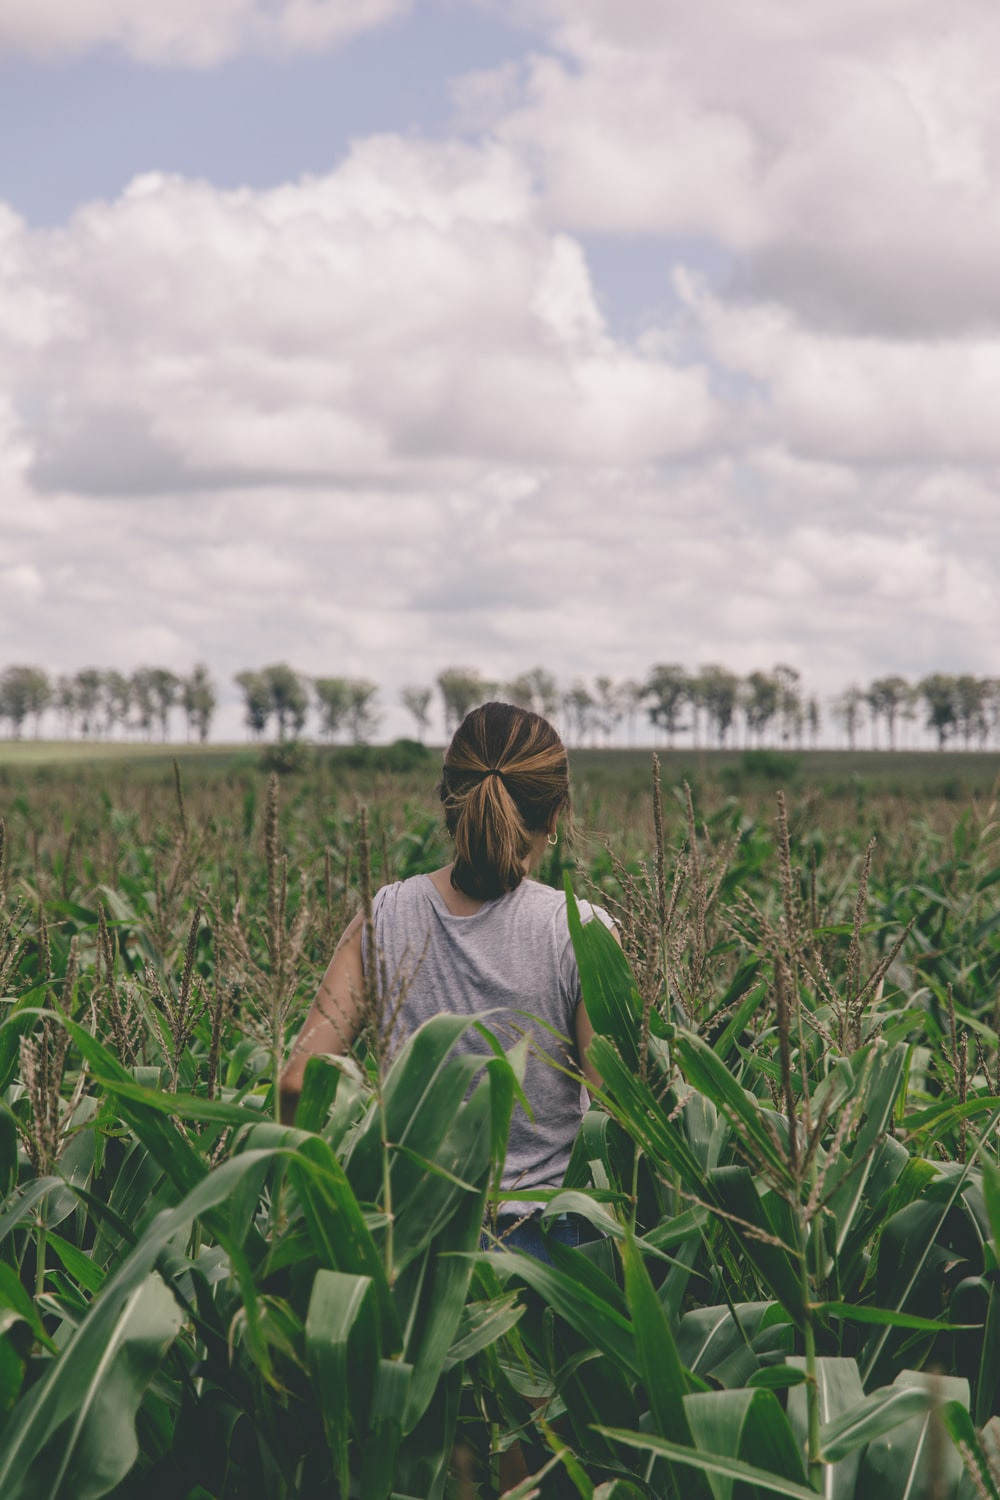 woman in gray shirt standing on green grass field during daytime